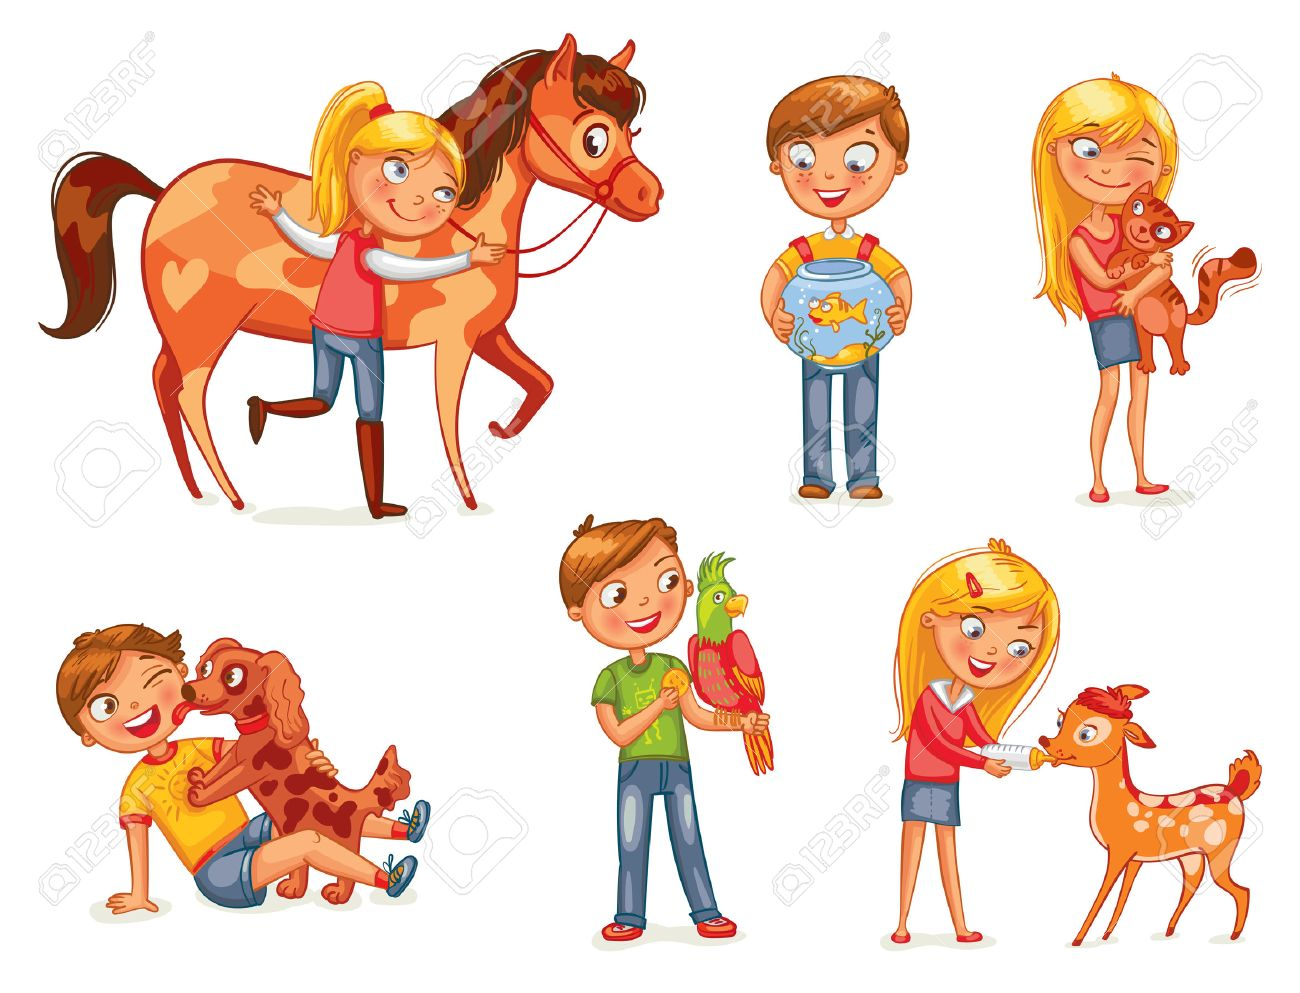 Caring for animals. Dog licking boy's face. Girl hugging a kitten. Girl fawn feeding bottle of milk. Jockey patting a horse. Funny cartoon character. Vector illustration. Isolated on white background - 50125183